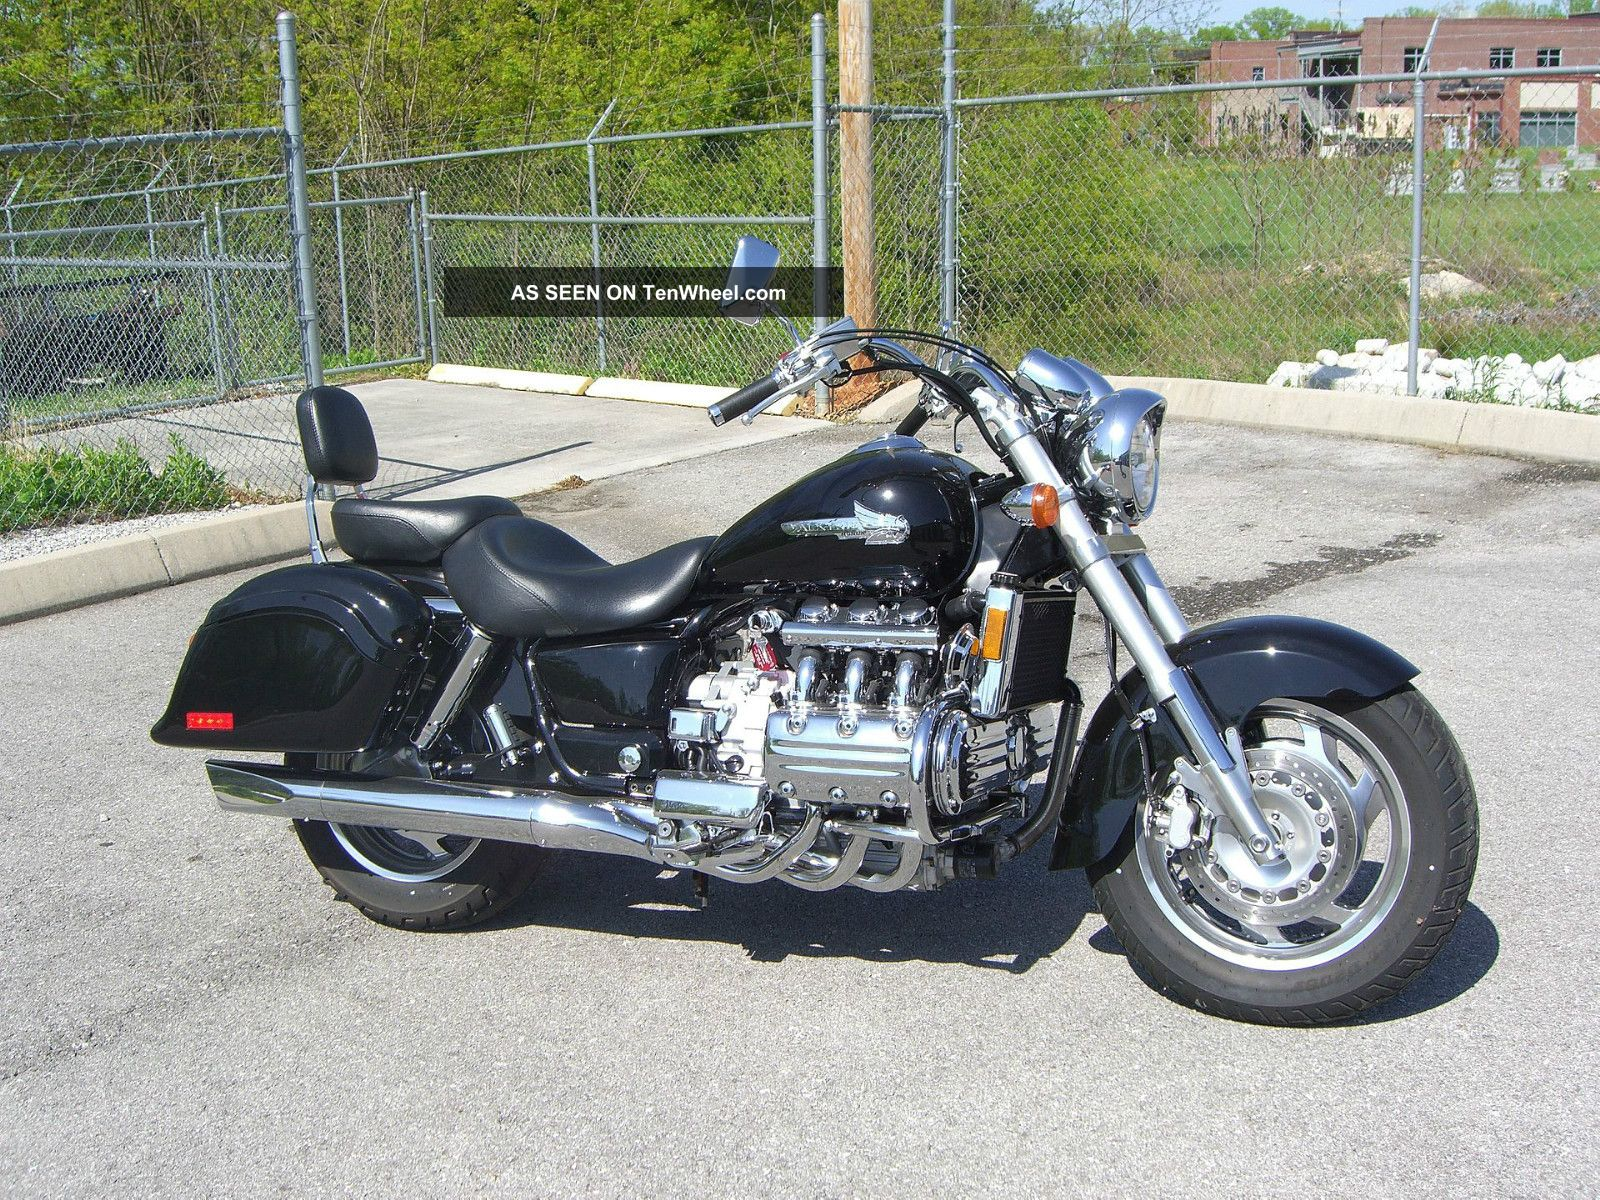 2003 Black Honda Valkyrie Last Year For This Model Valkyrie photo